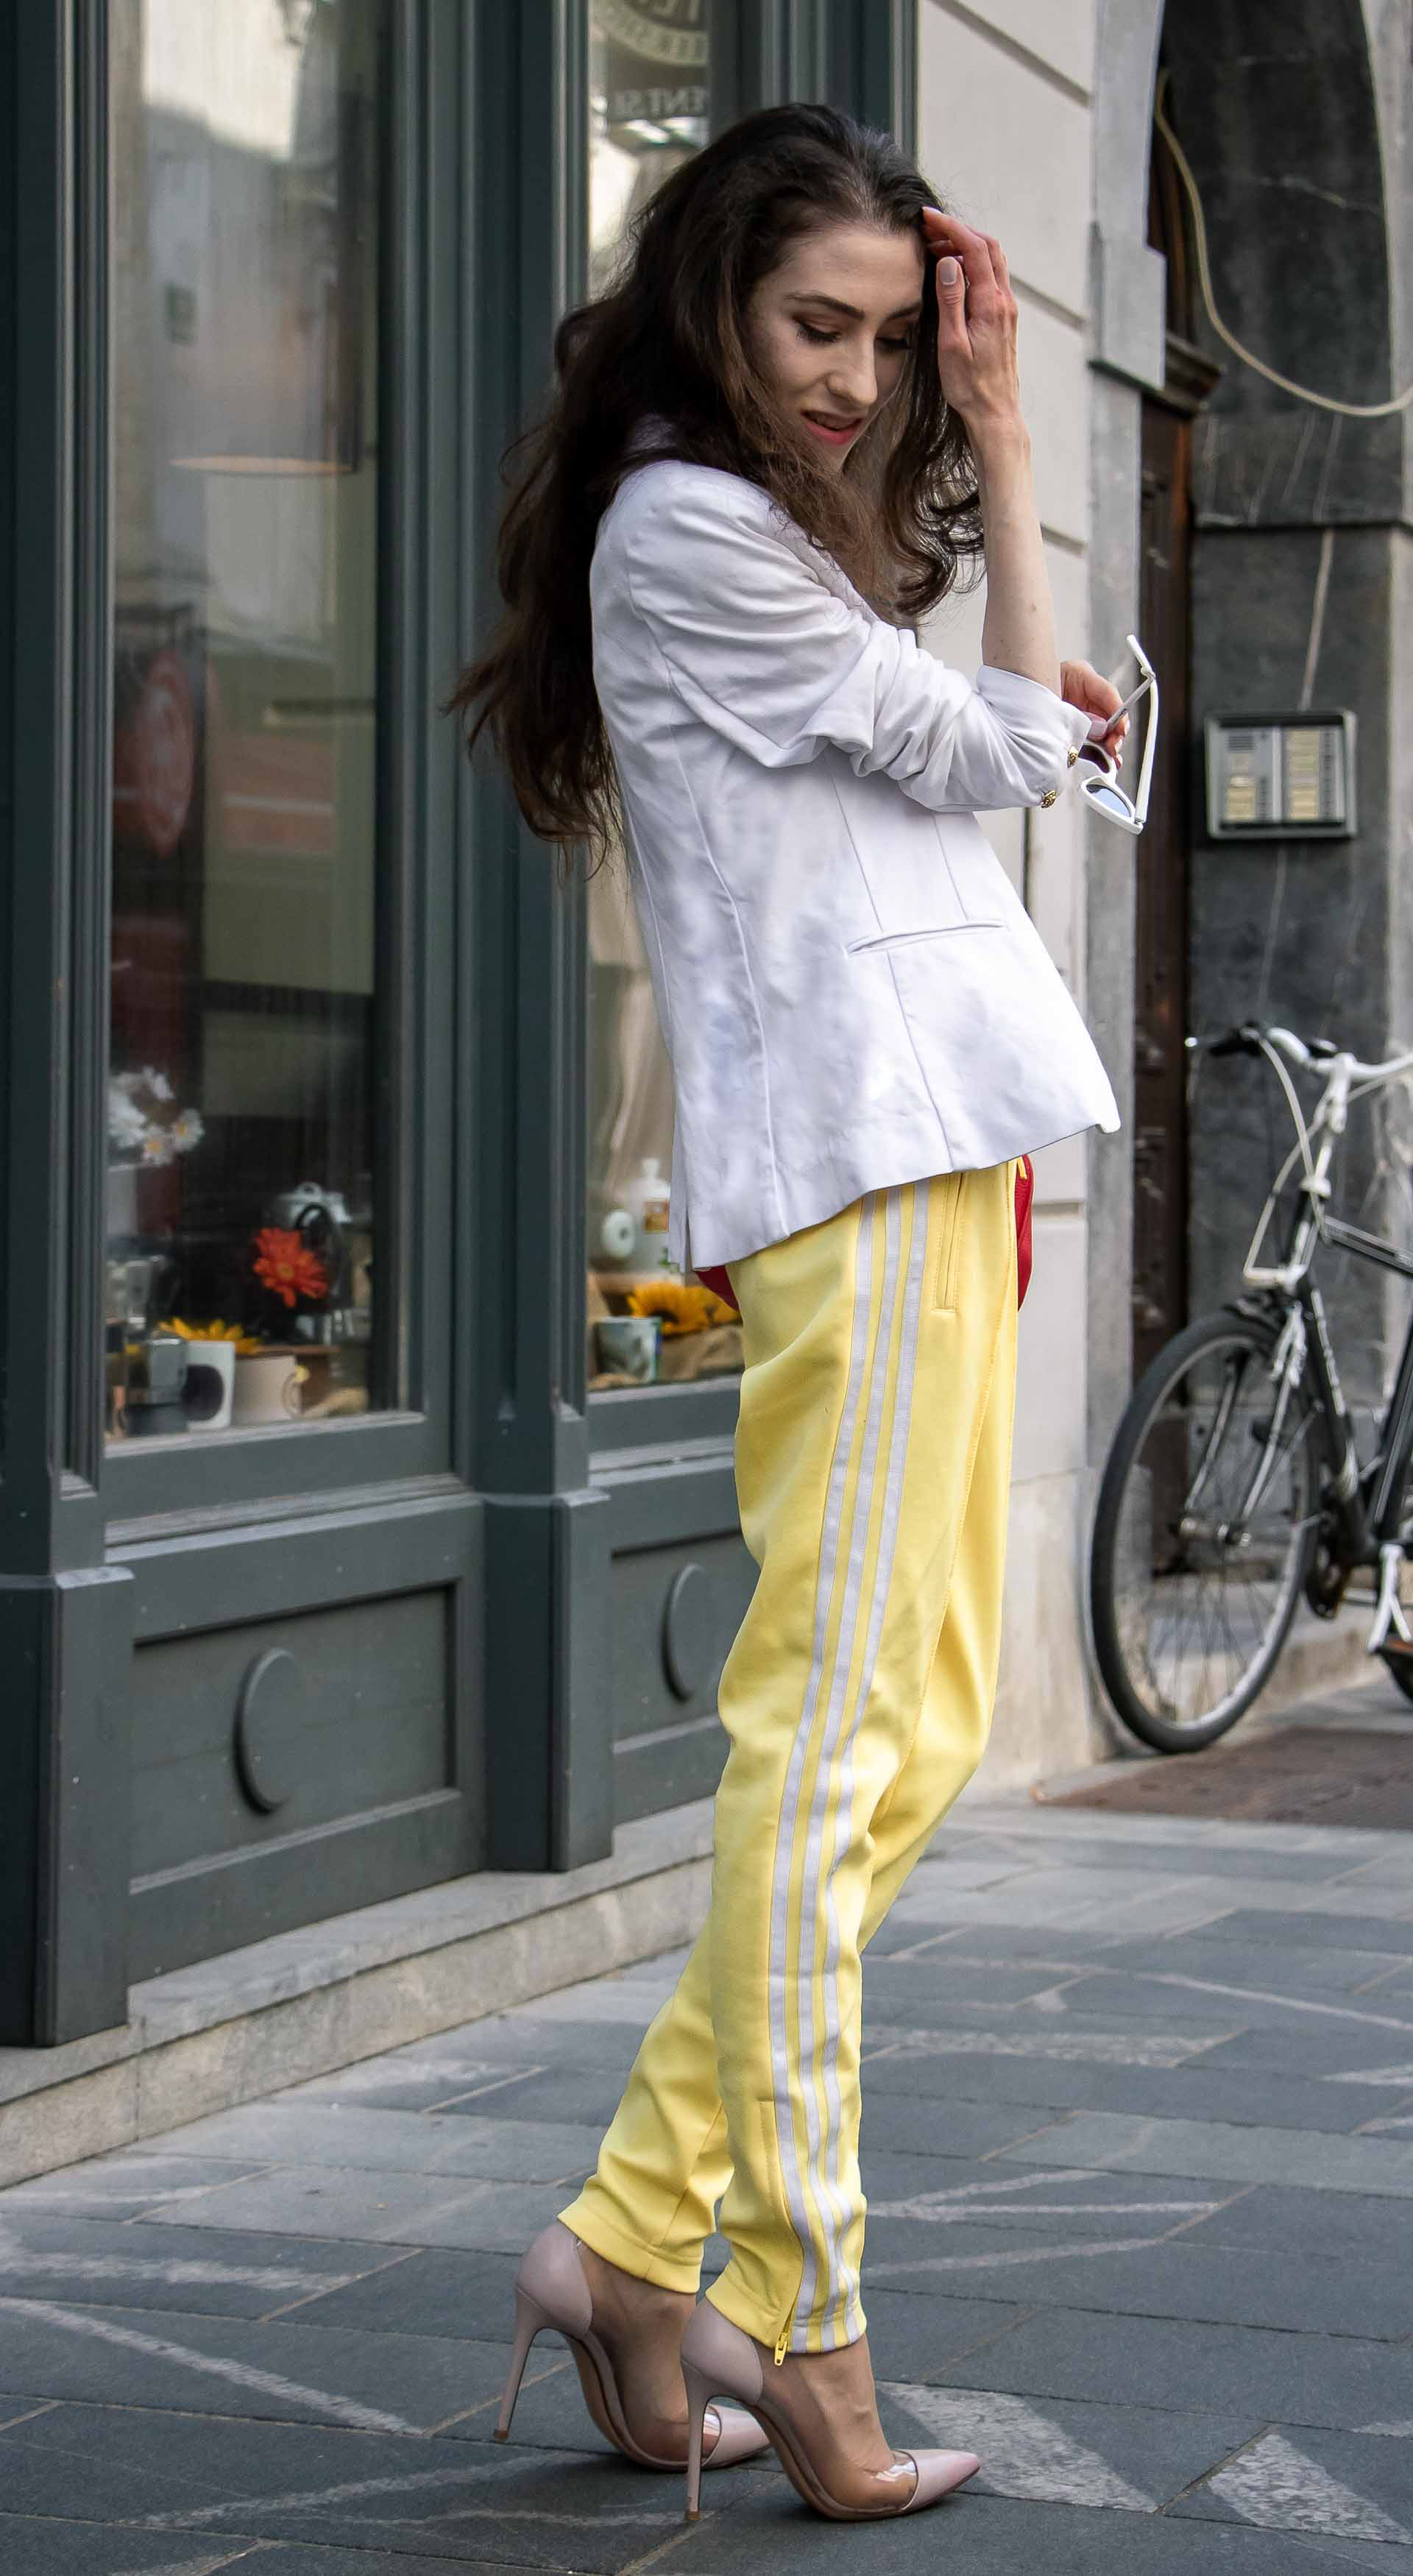 Veronika Lipar Fashion Blogger of Brunette from Wall Street dressed in white blazer, white H&M t-shirt, yellow Addidas track pants, See by Chloé pink top handle bag, Adam Selman x Le Specs white cat eye Lolita sunglasses, pink blush Gianvito Rossi plexi pumps in summer